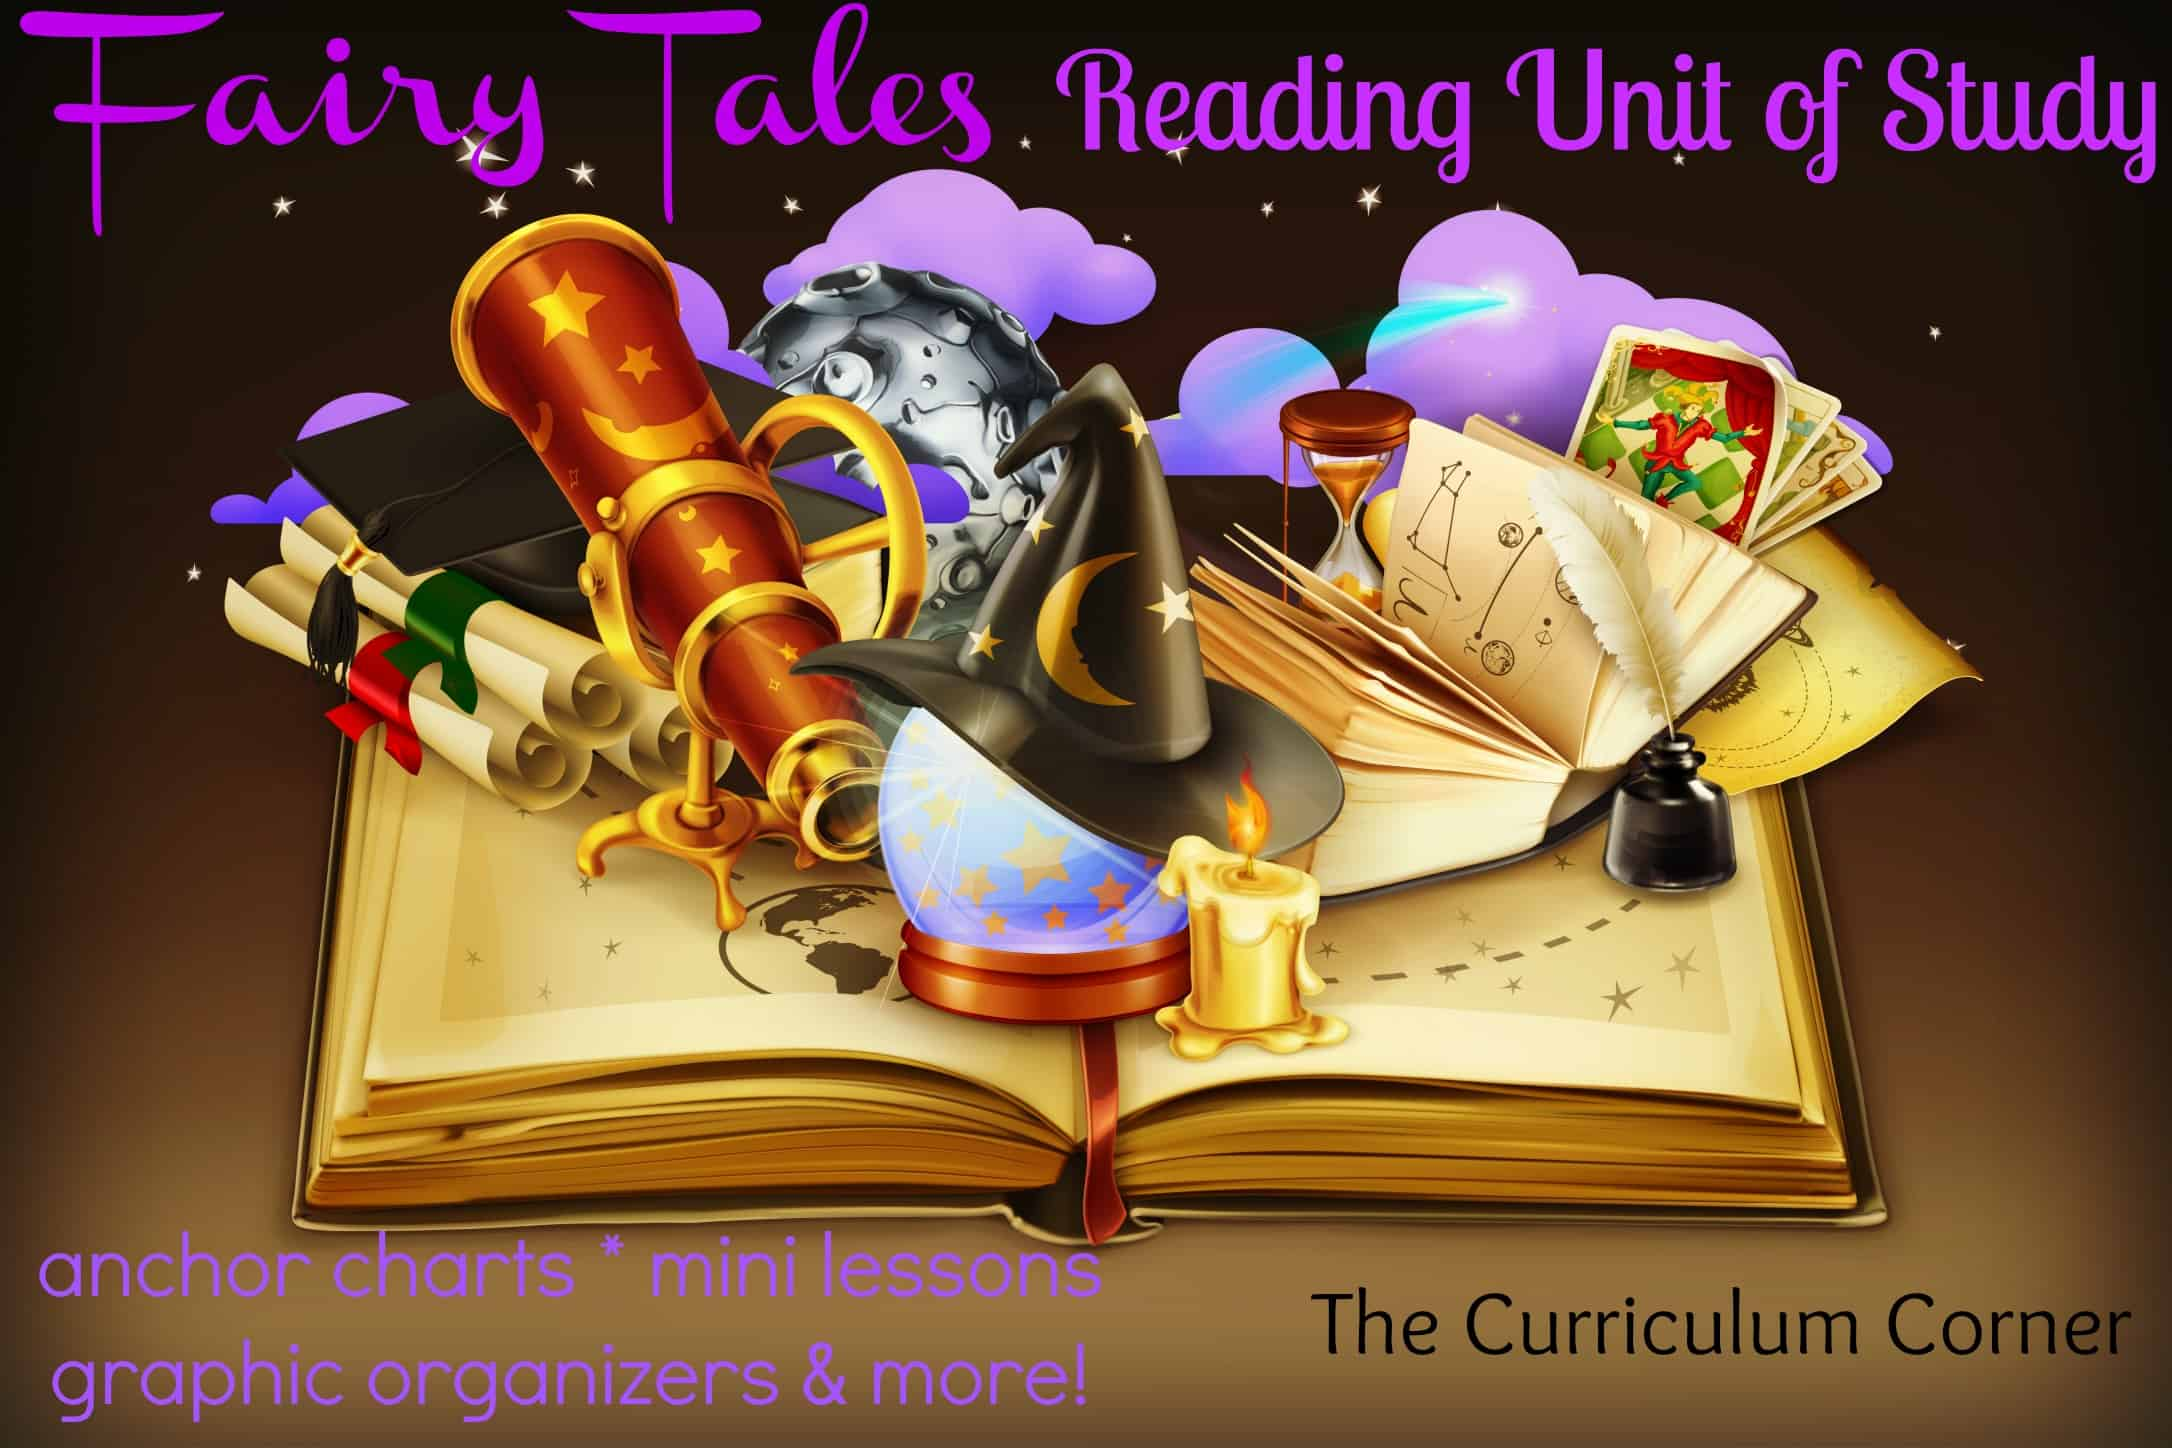 Fairy tale unit of study updated the curriculum corner 123 fairy tale reading unit of study free from the curriculum corner anchor charts graphic pronofoot35fo Choice Image